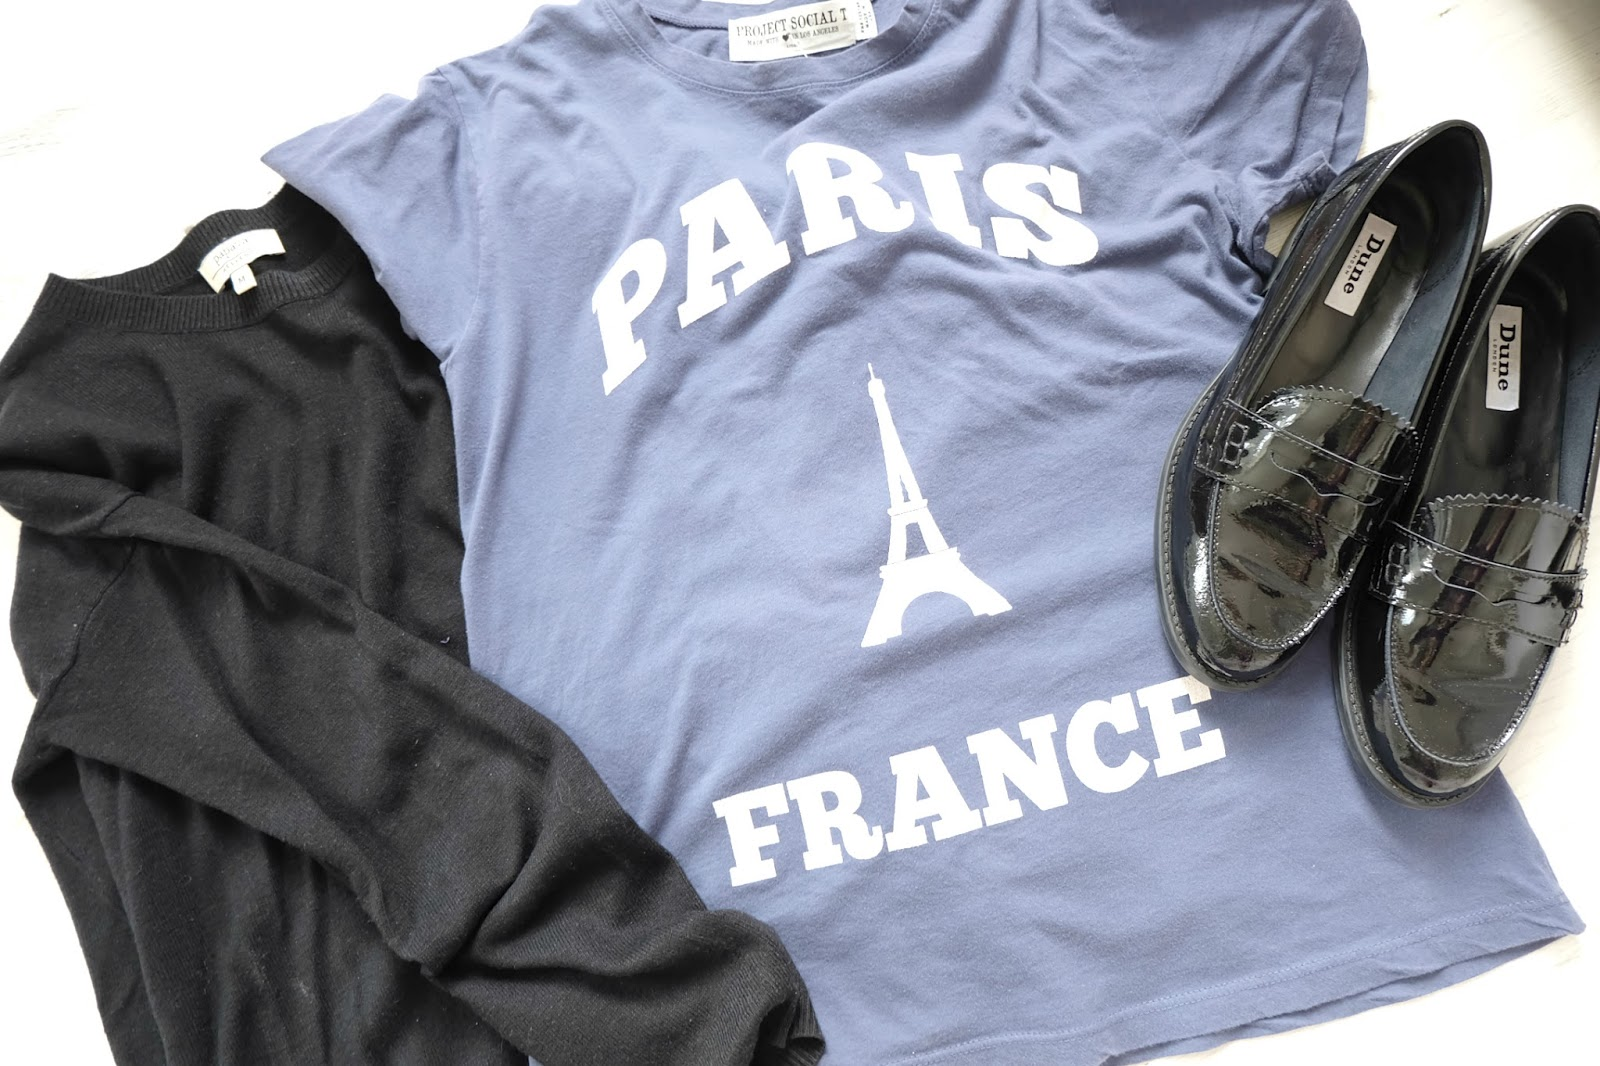 Paris Tee By Project Social T Topshop